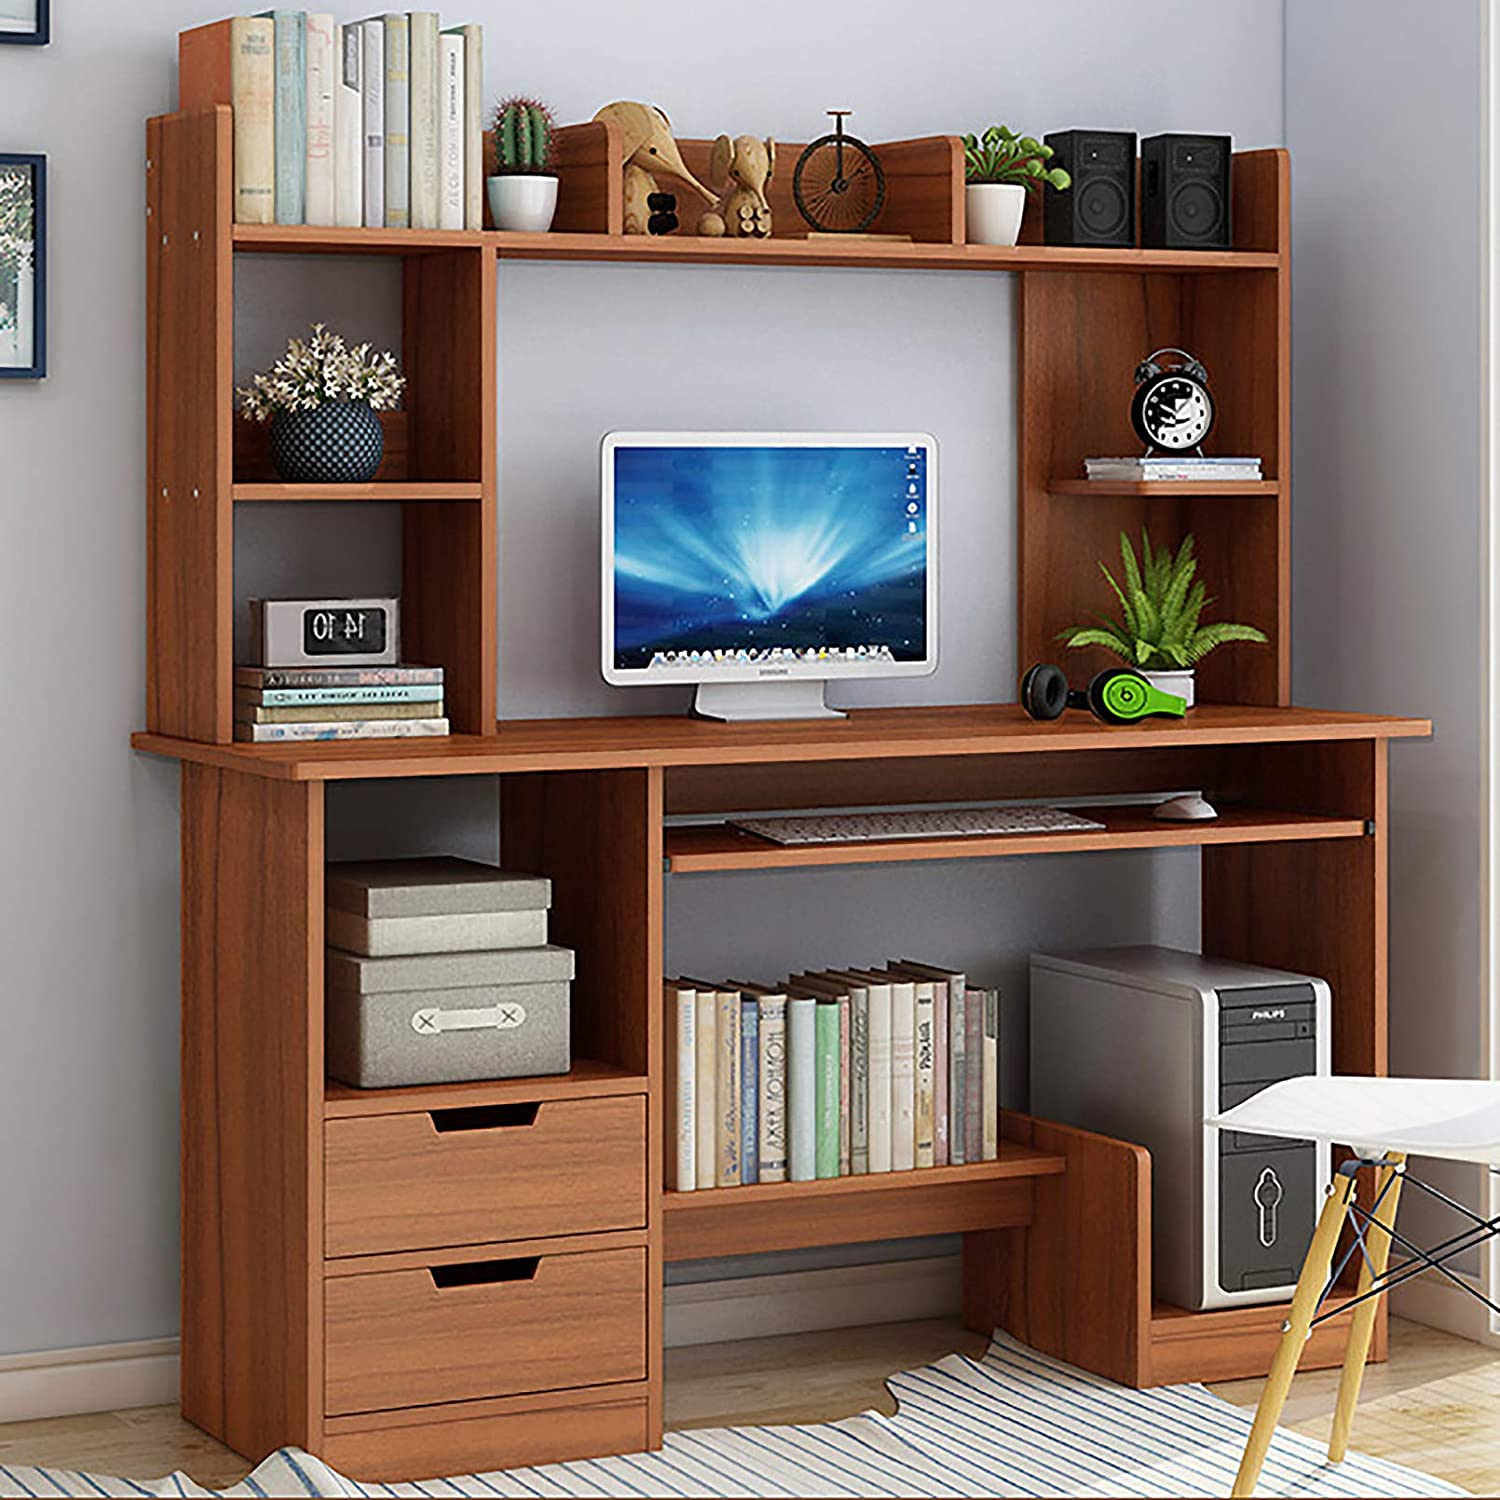 XM&LZ Modern Computer Desk with Hutch and Bookshelf,47 Inches Laptop PC Table with 2 Drawer Shelves,Large Writing Study Table for Home Office-Walnut 120x45x132cm(47x18x52inch)